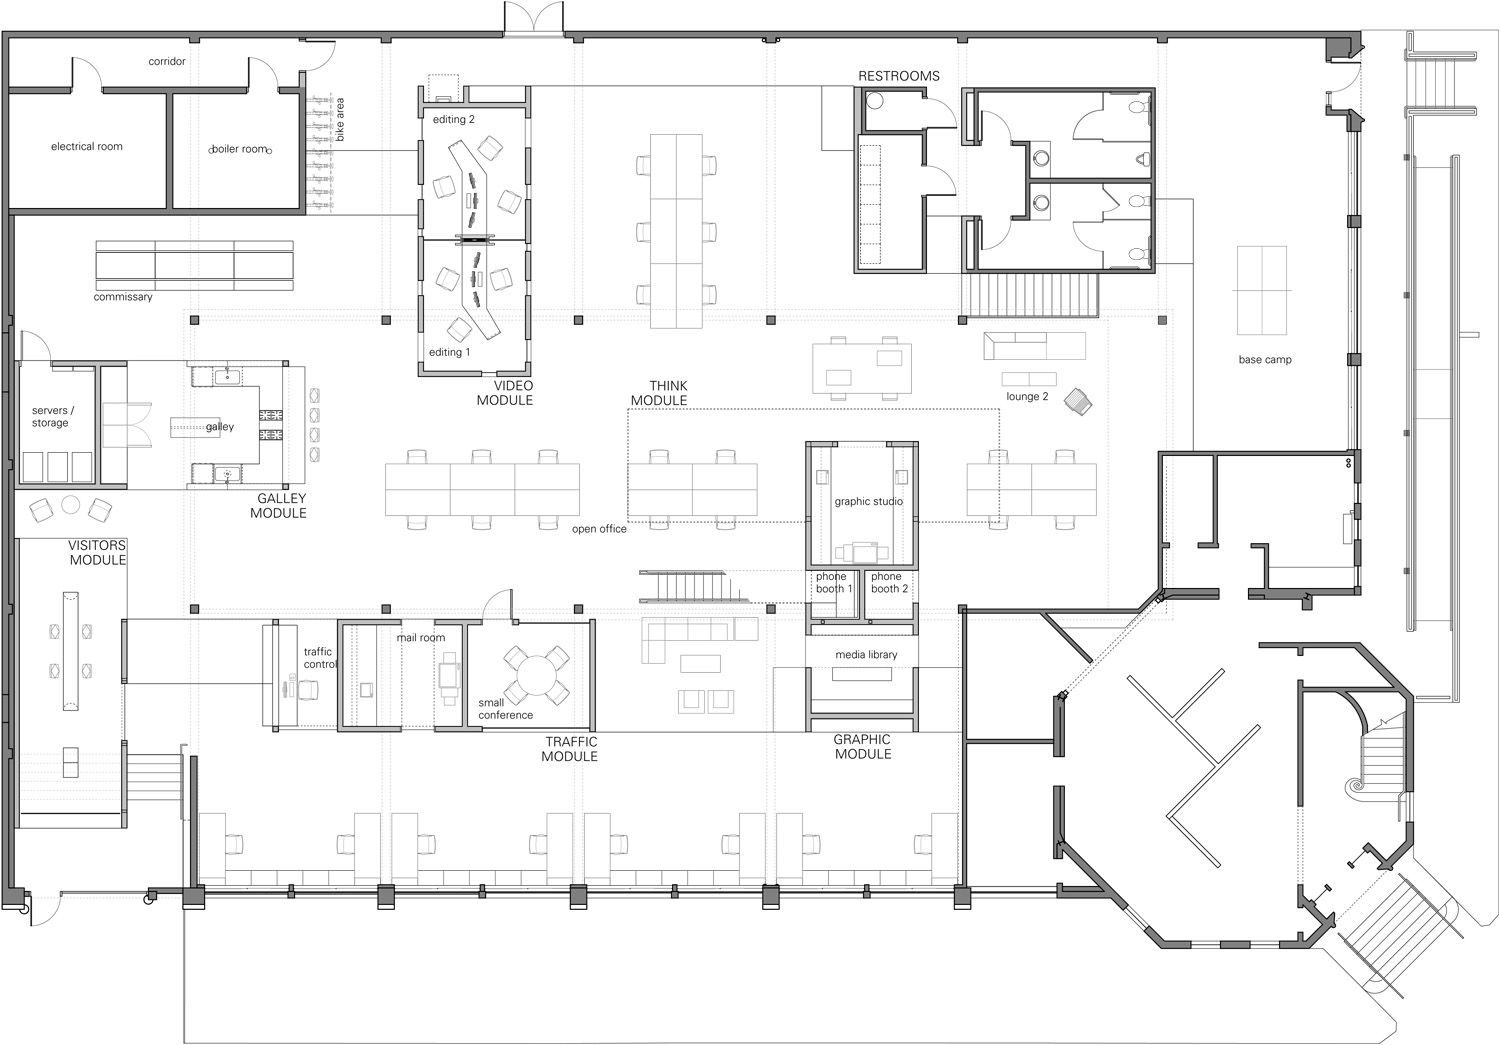 North skylab architecture office floor plan office for Architecture blueprints